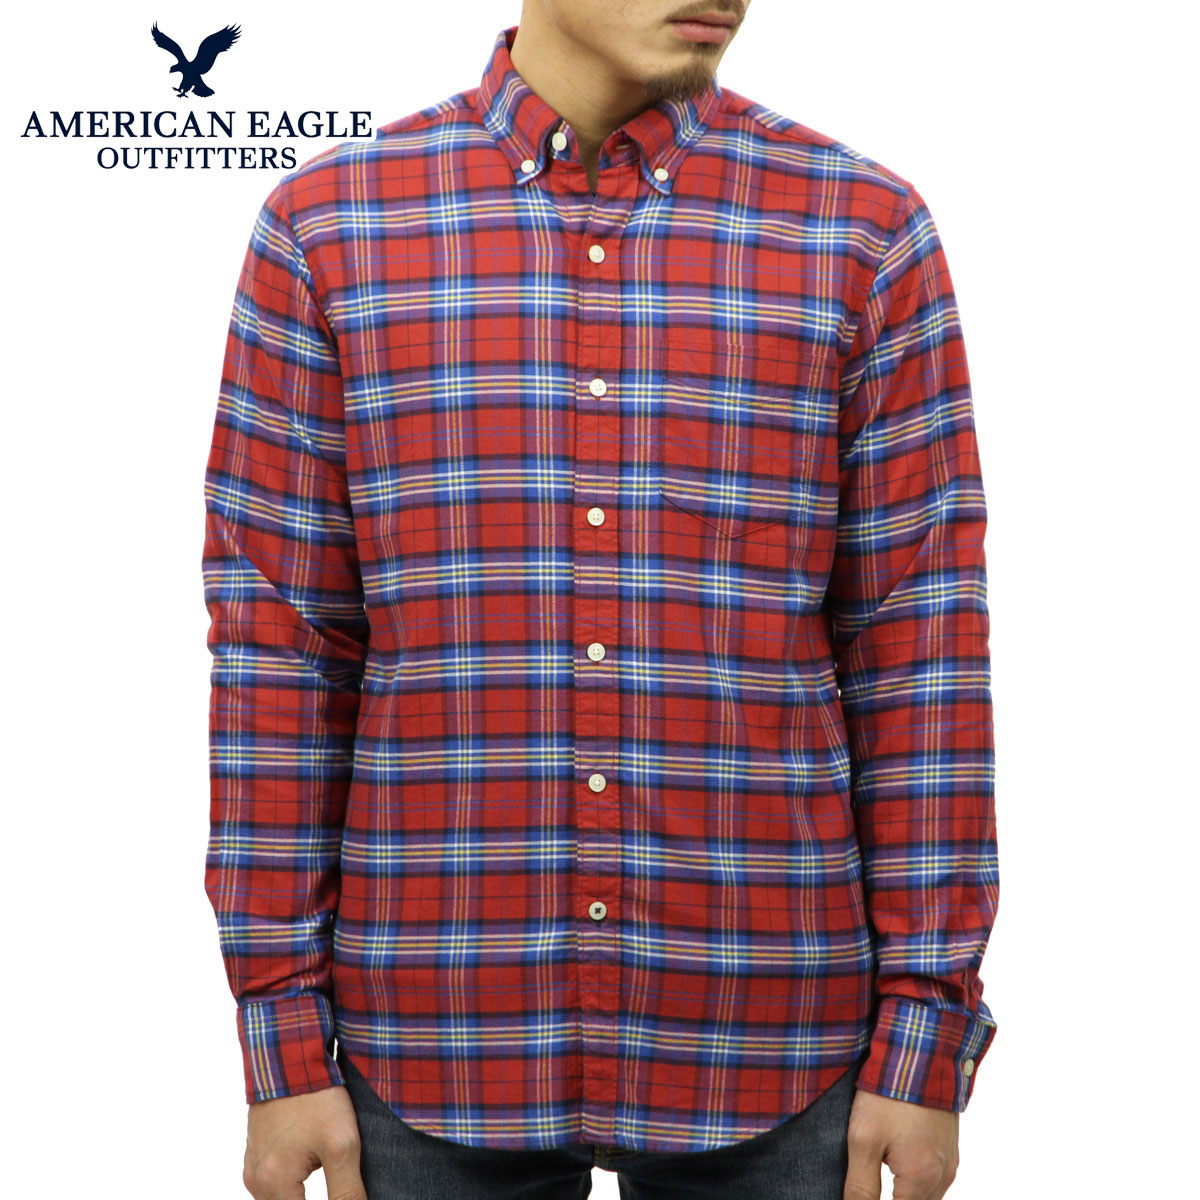 757c2a4d American eagle AMERICAN EAGLE regular article men long sleeves button-down  shirt AEO CLASSIC PLAID ...